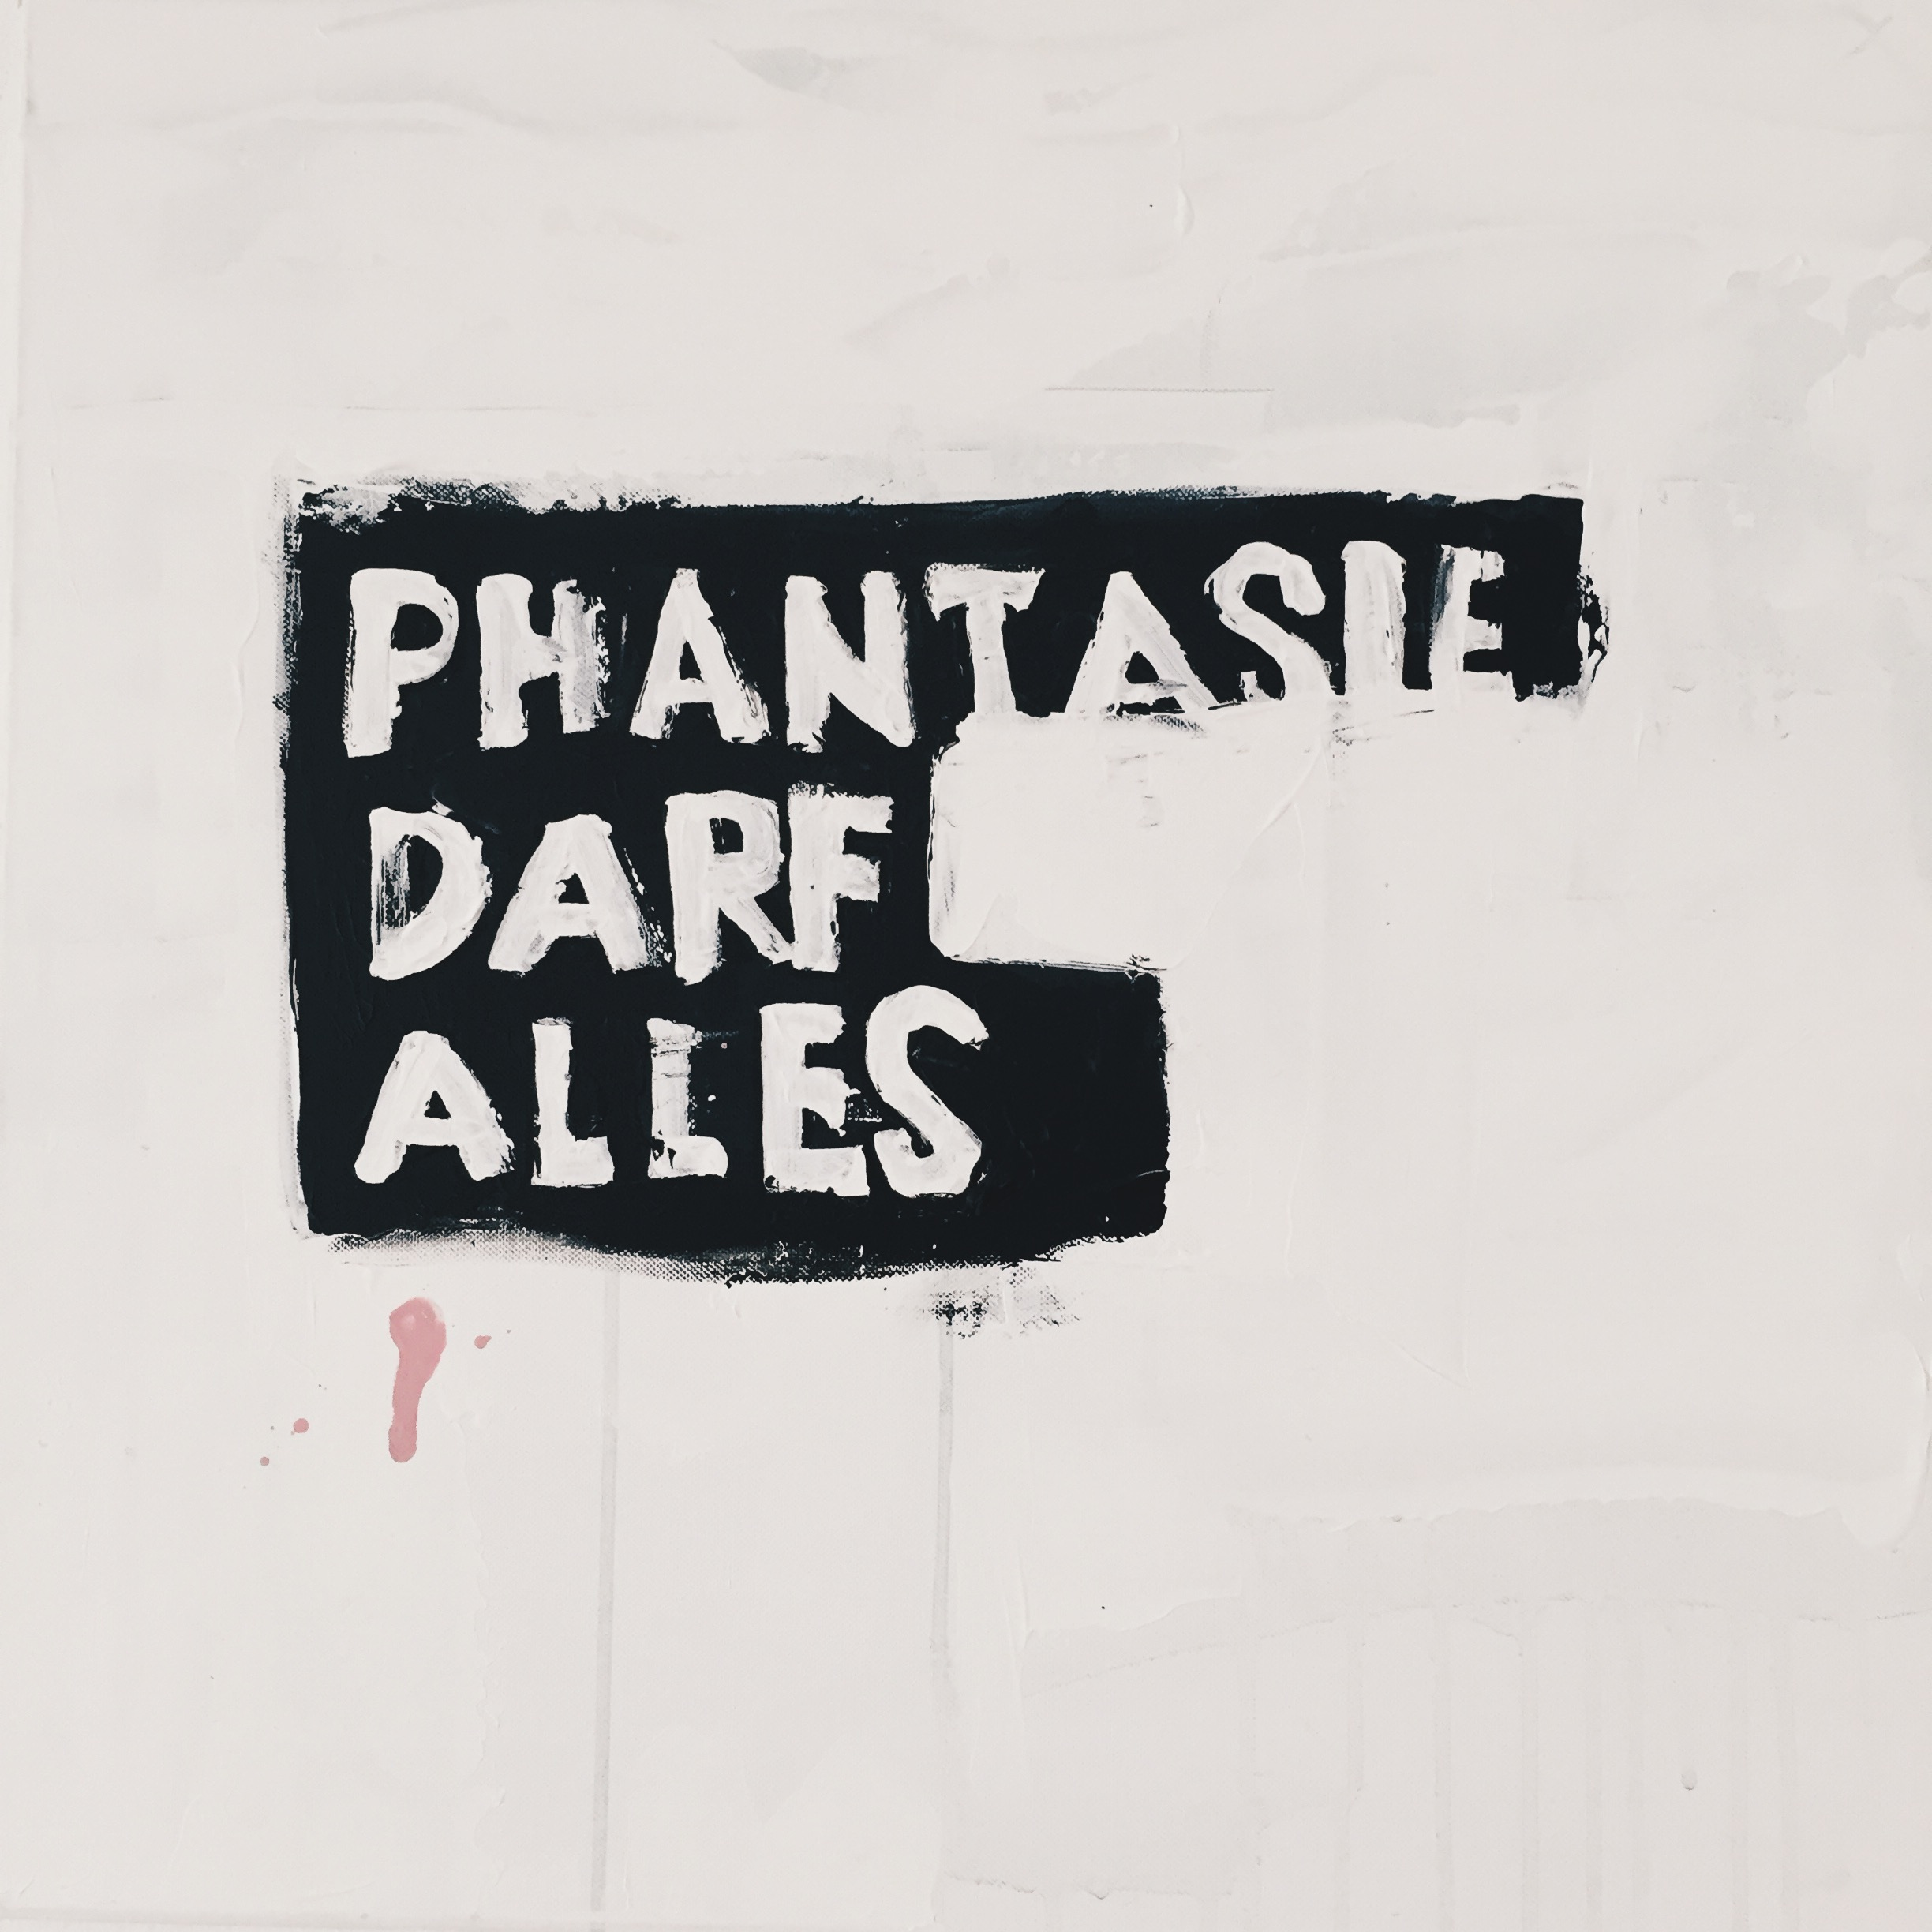 Phantasie darf alles (Sold)